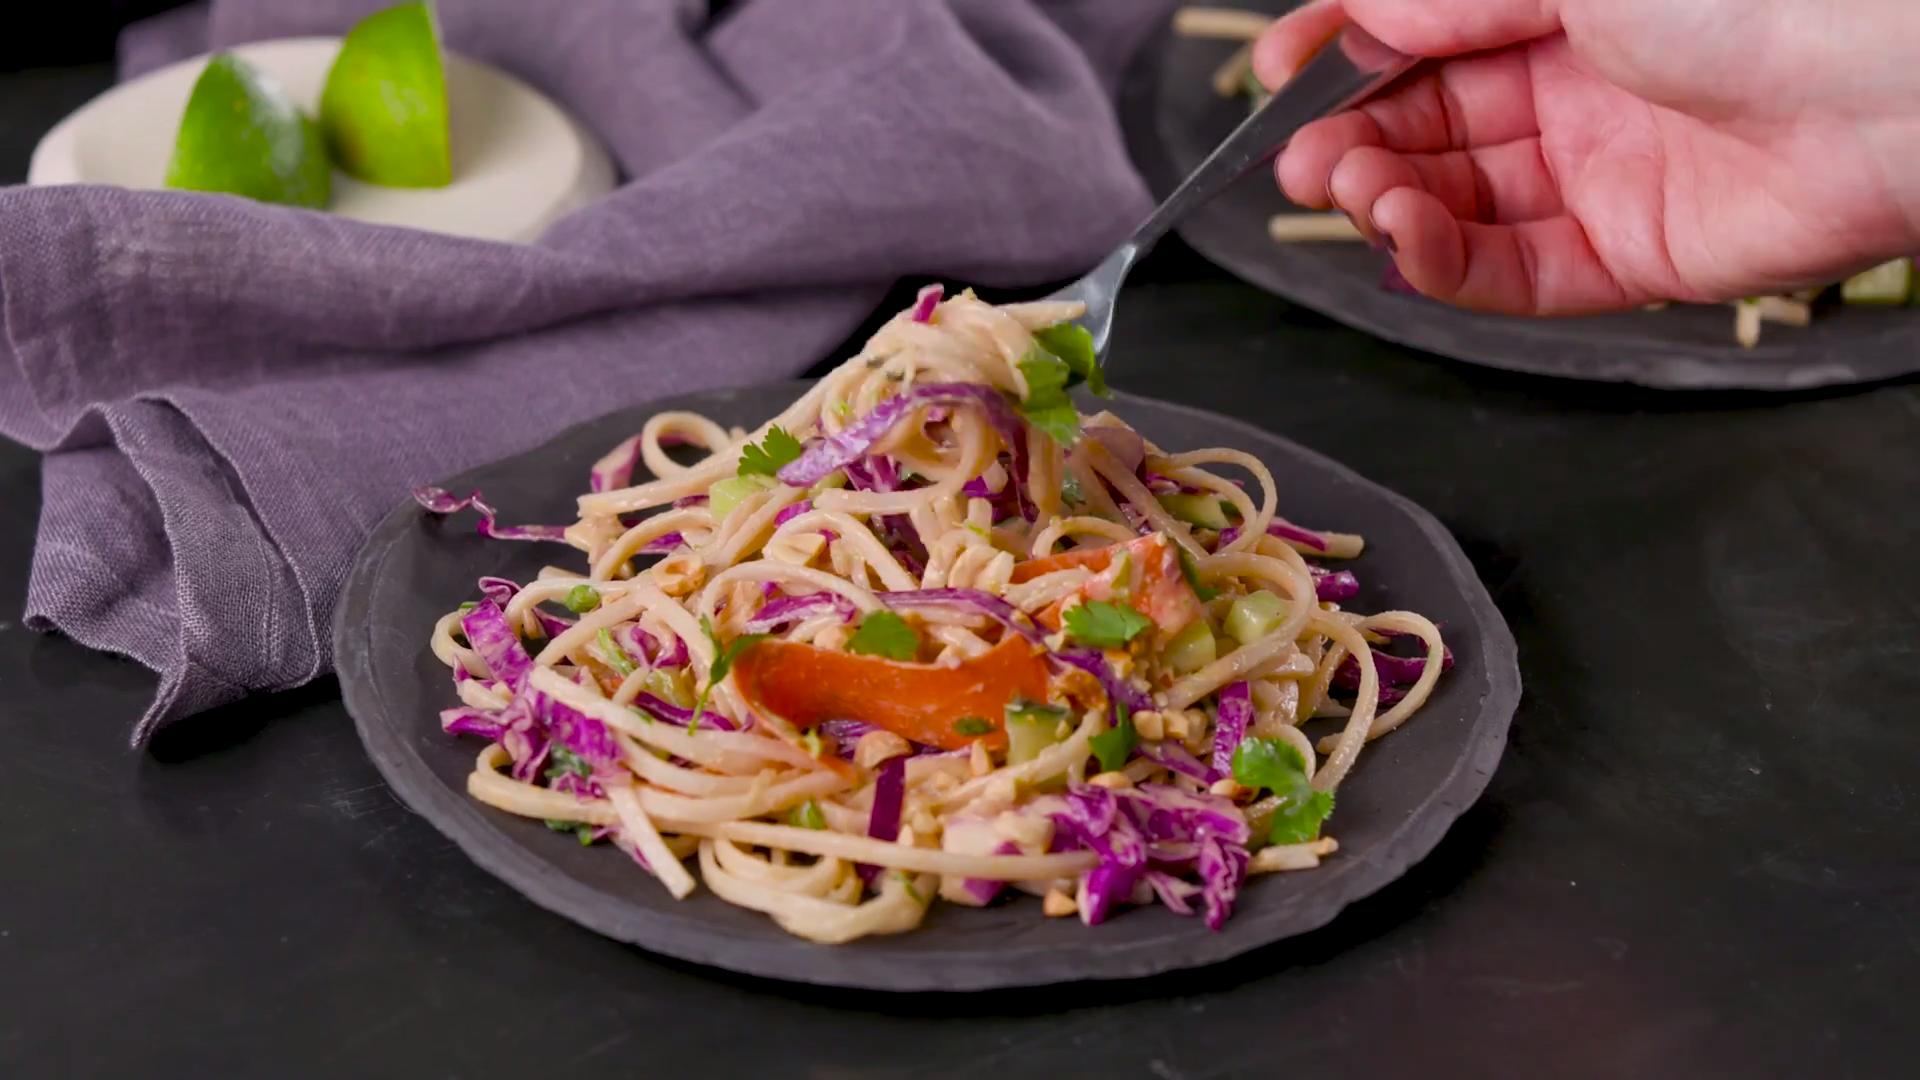 How to Make Cabbage and Rice Noodle Salad With Peanut-Lime Dressing